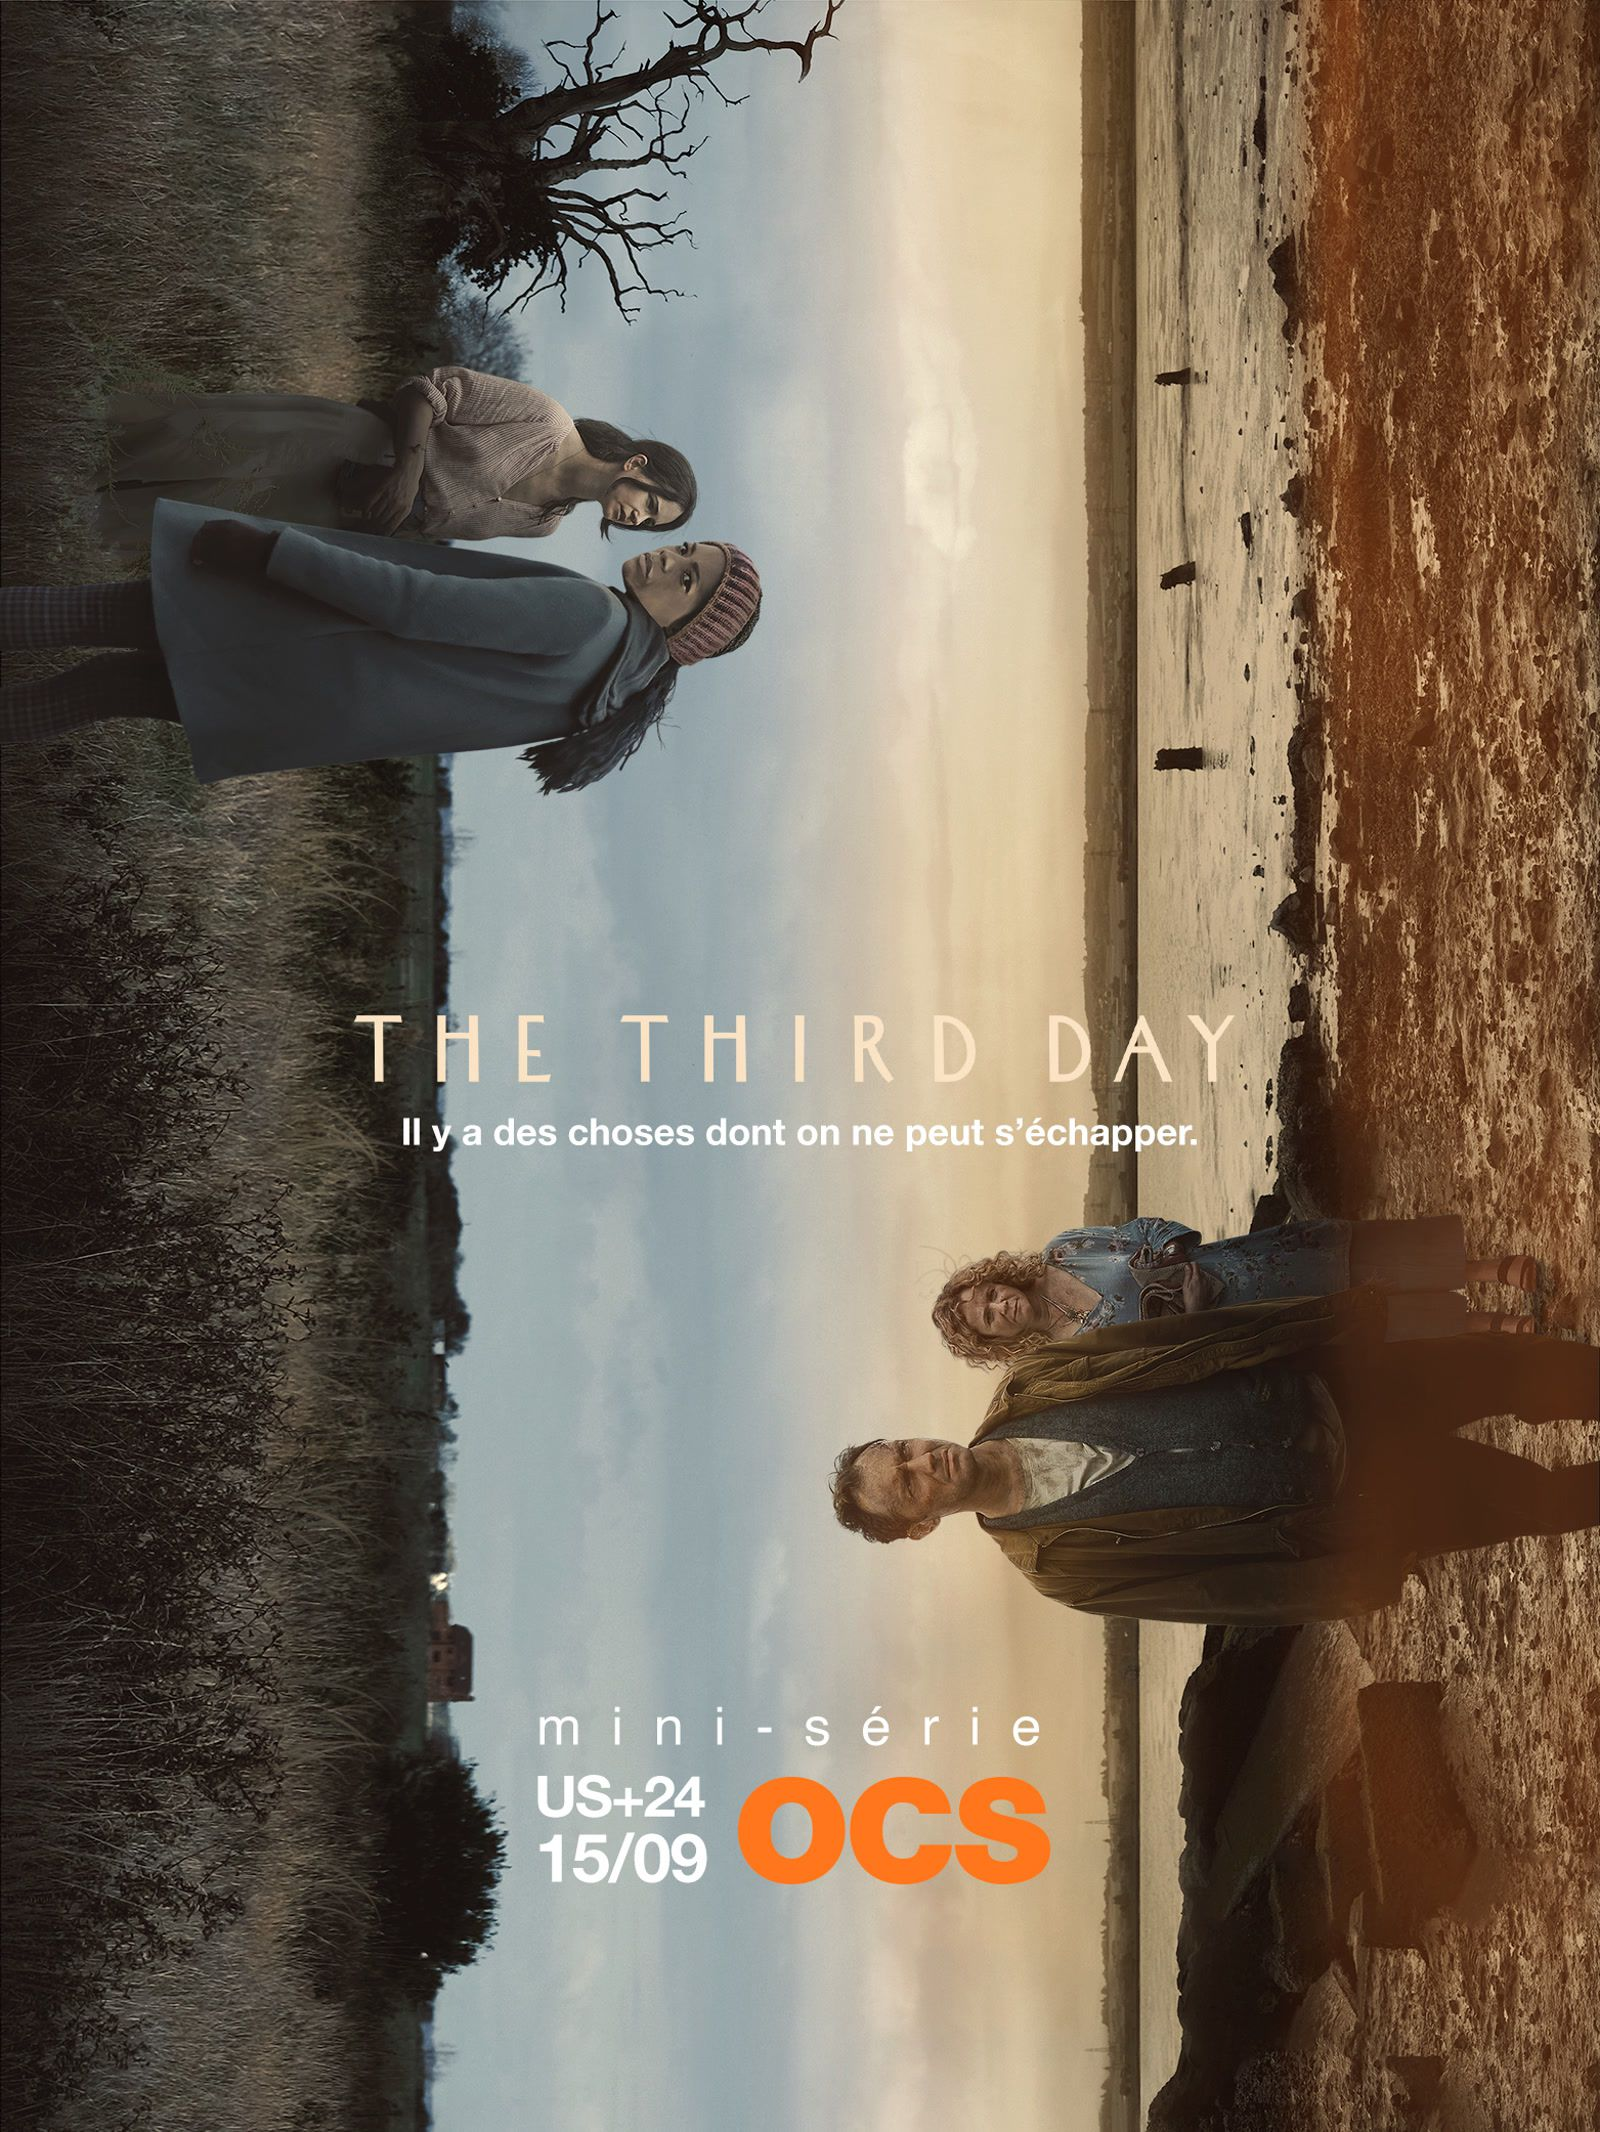 The Third Day - Série (2020) streaming VF gratuit complet